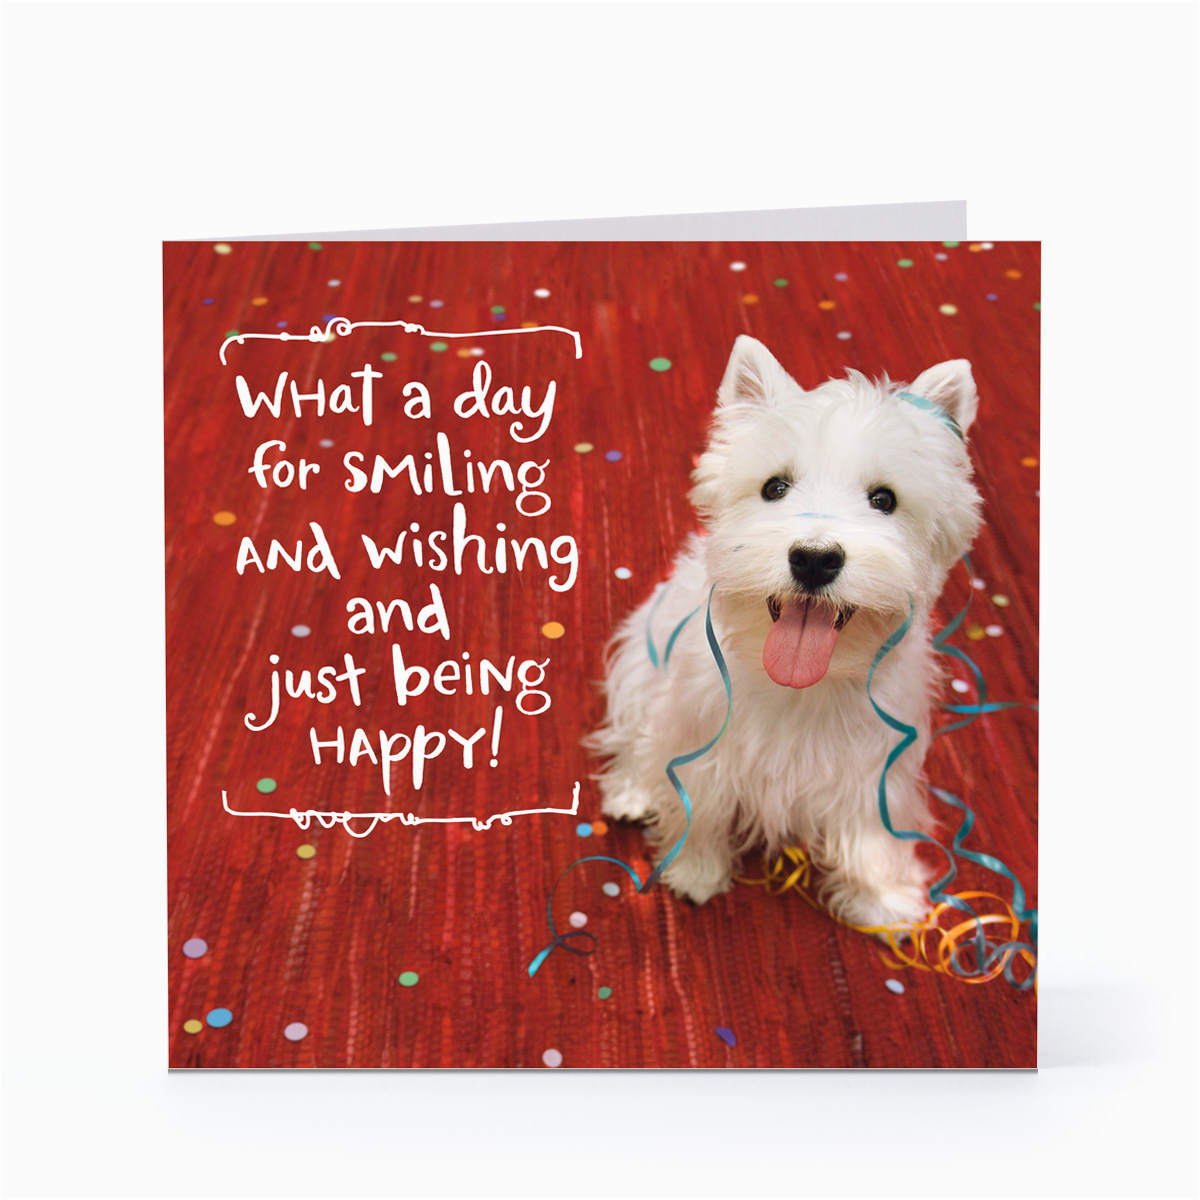 Birthday Card with Dogs Smiling Happy Dog Birthday Cards Hallmark Card Pictures